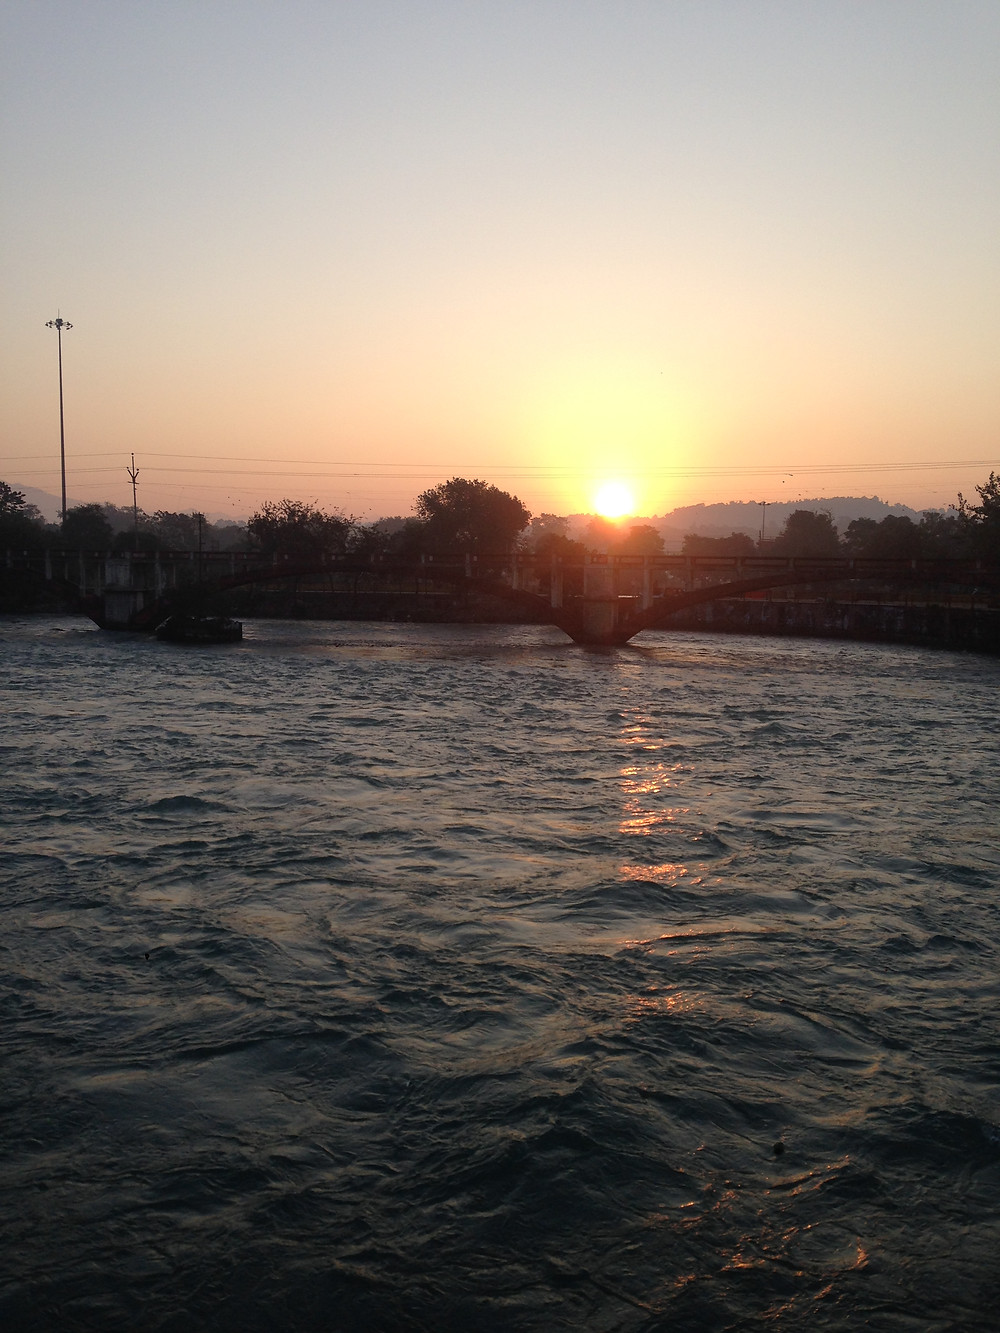 Sunrise over the holy river Ganges.